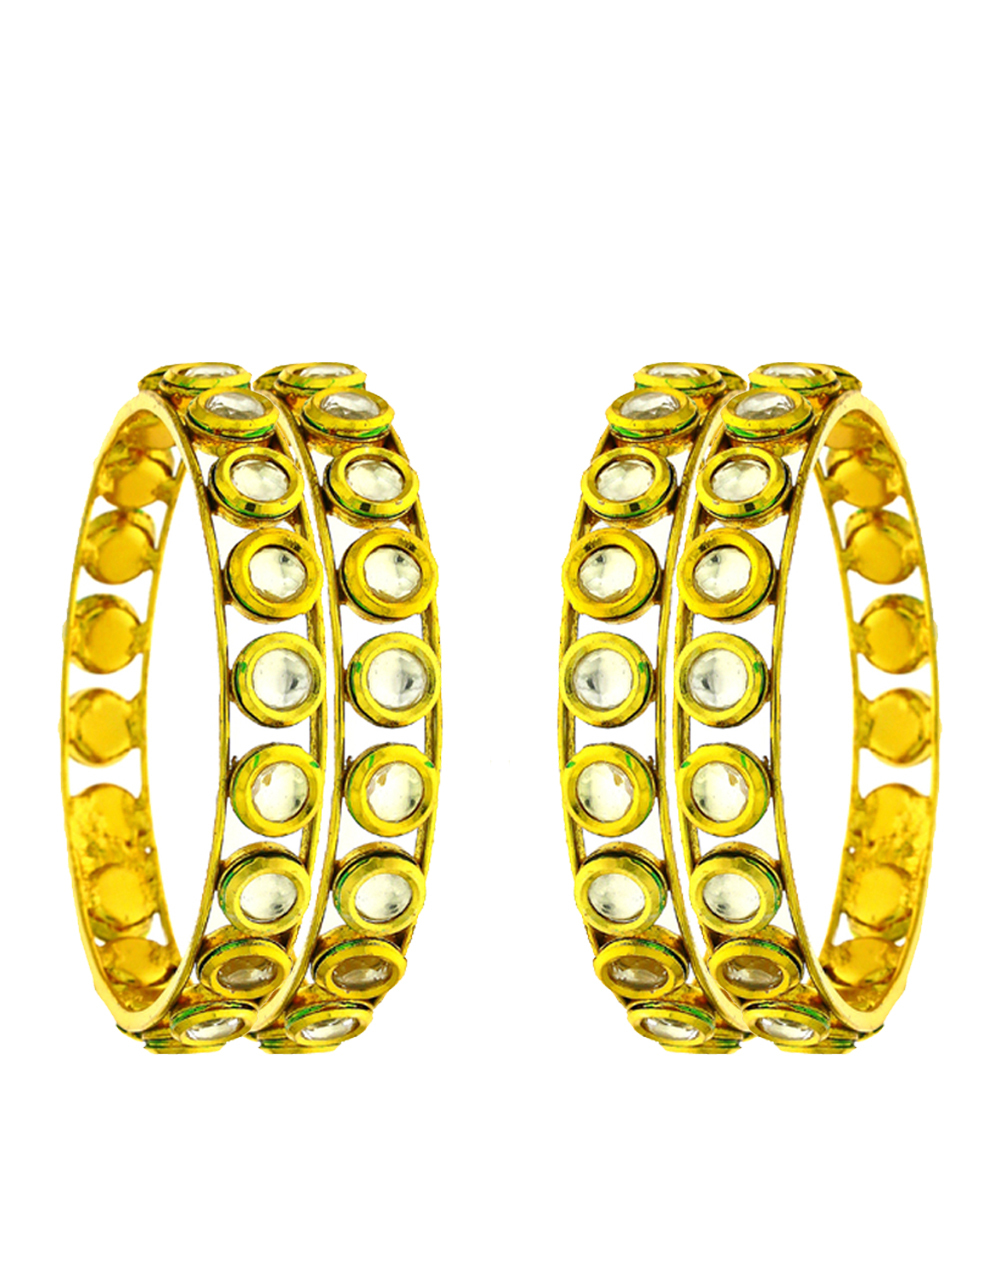 Designer Kundan Studded Gold Finish Bangles For Women